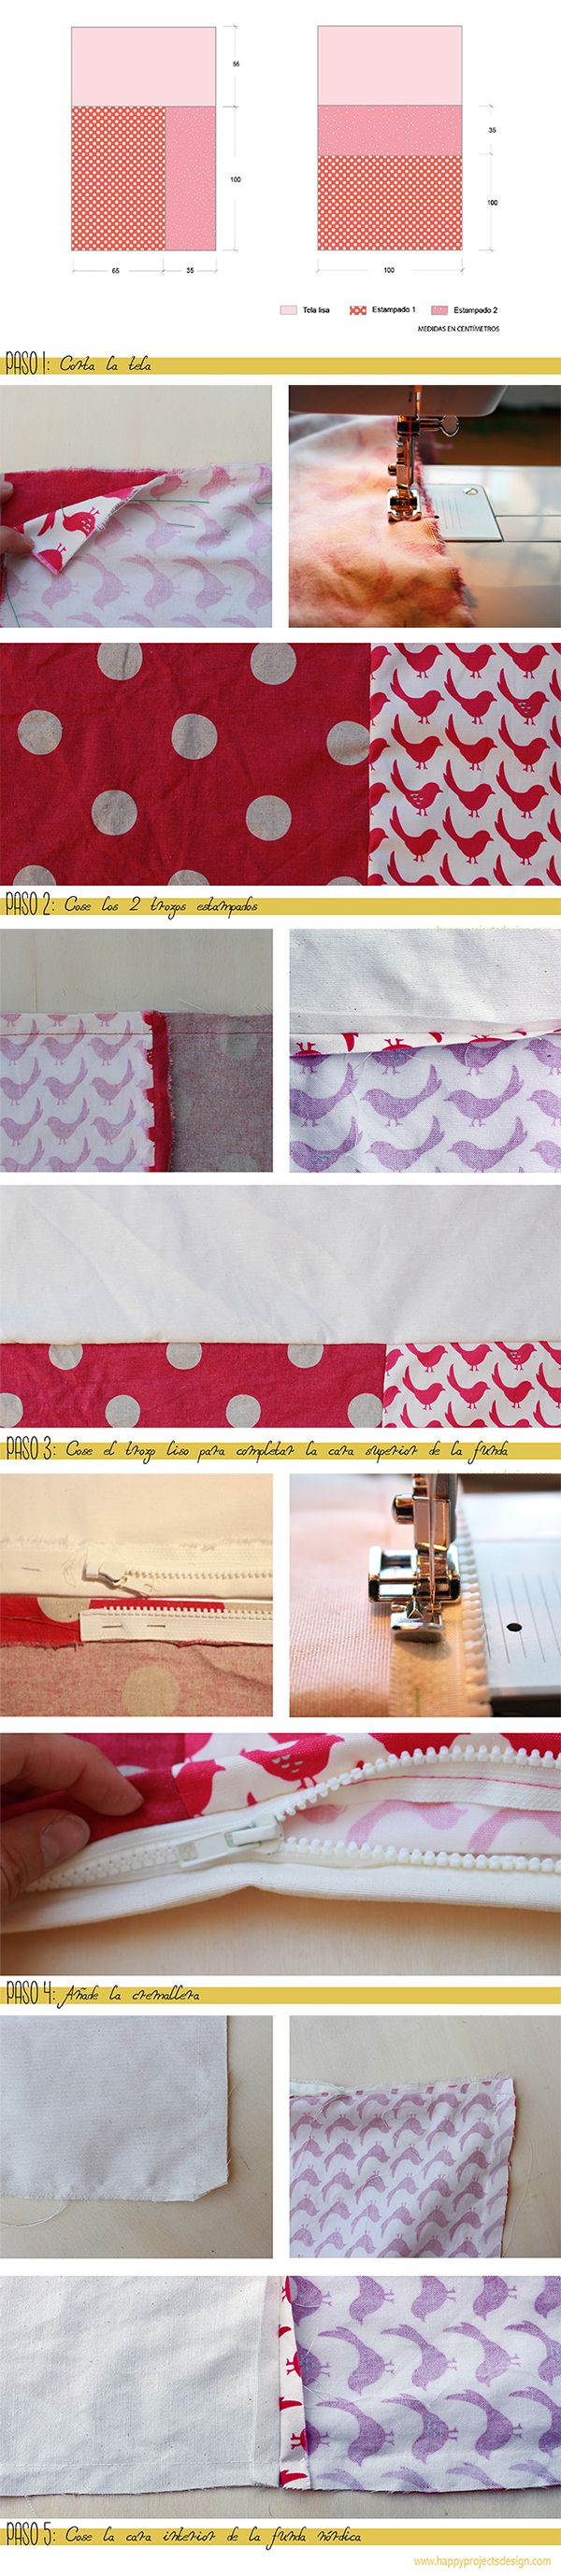 #tutorial funda nórdica #DIY #costura